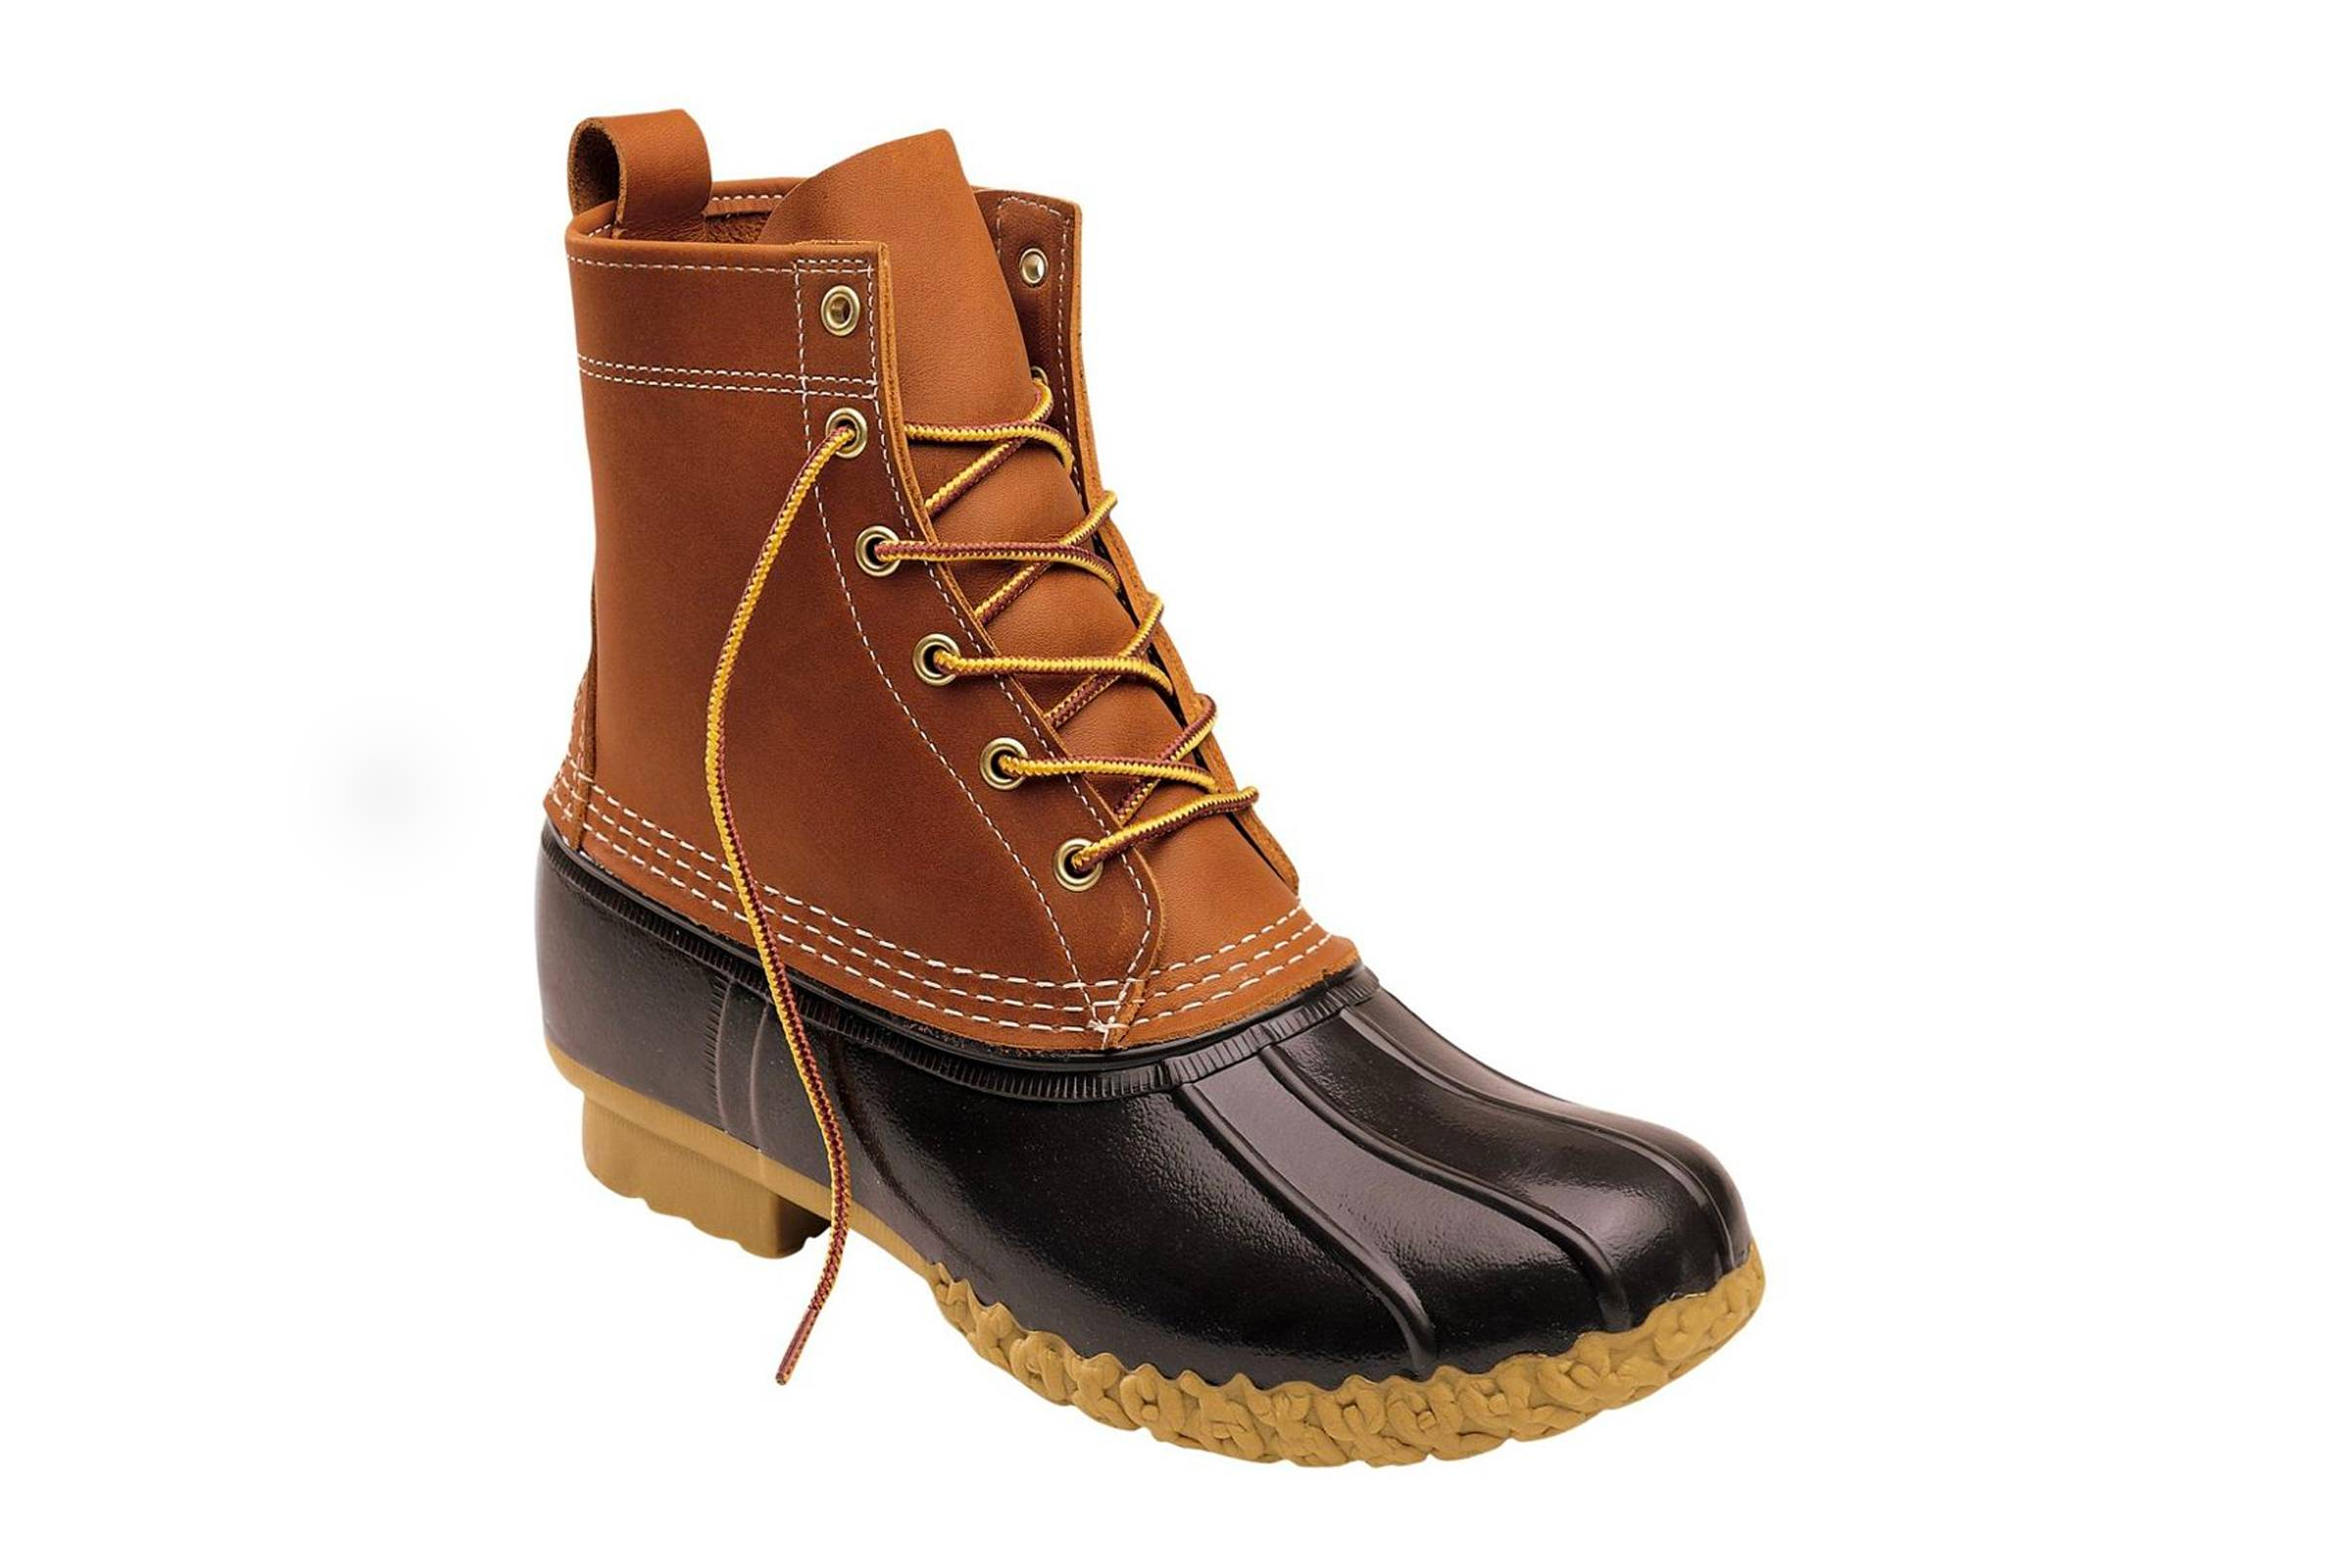 L.L. Bean Duck Boot